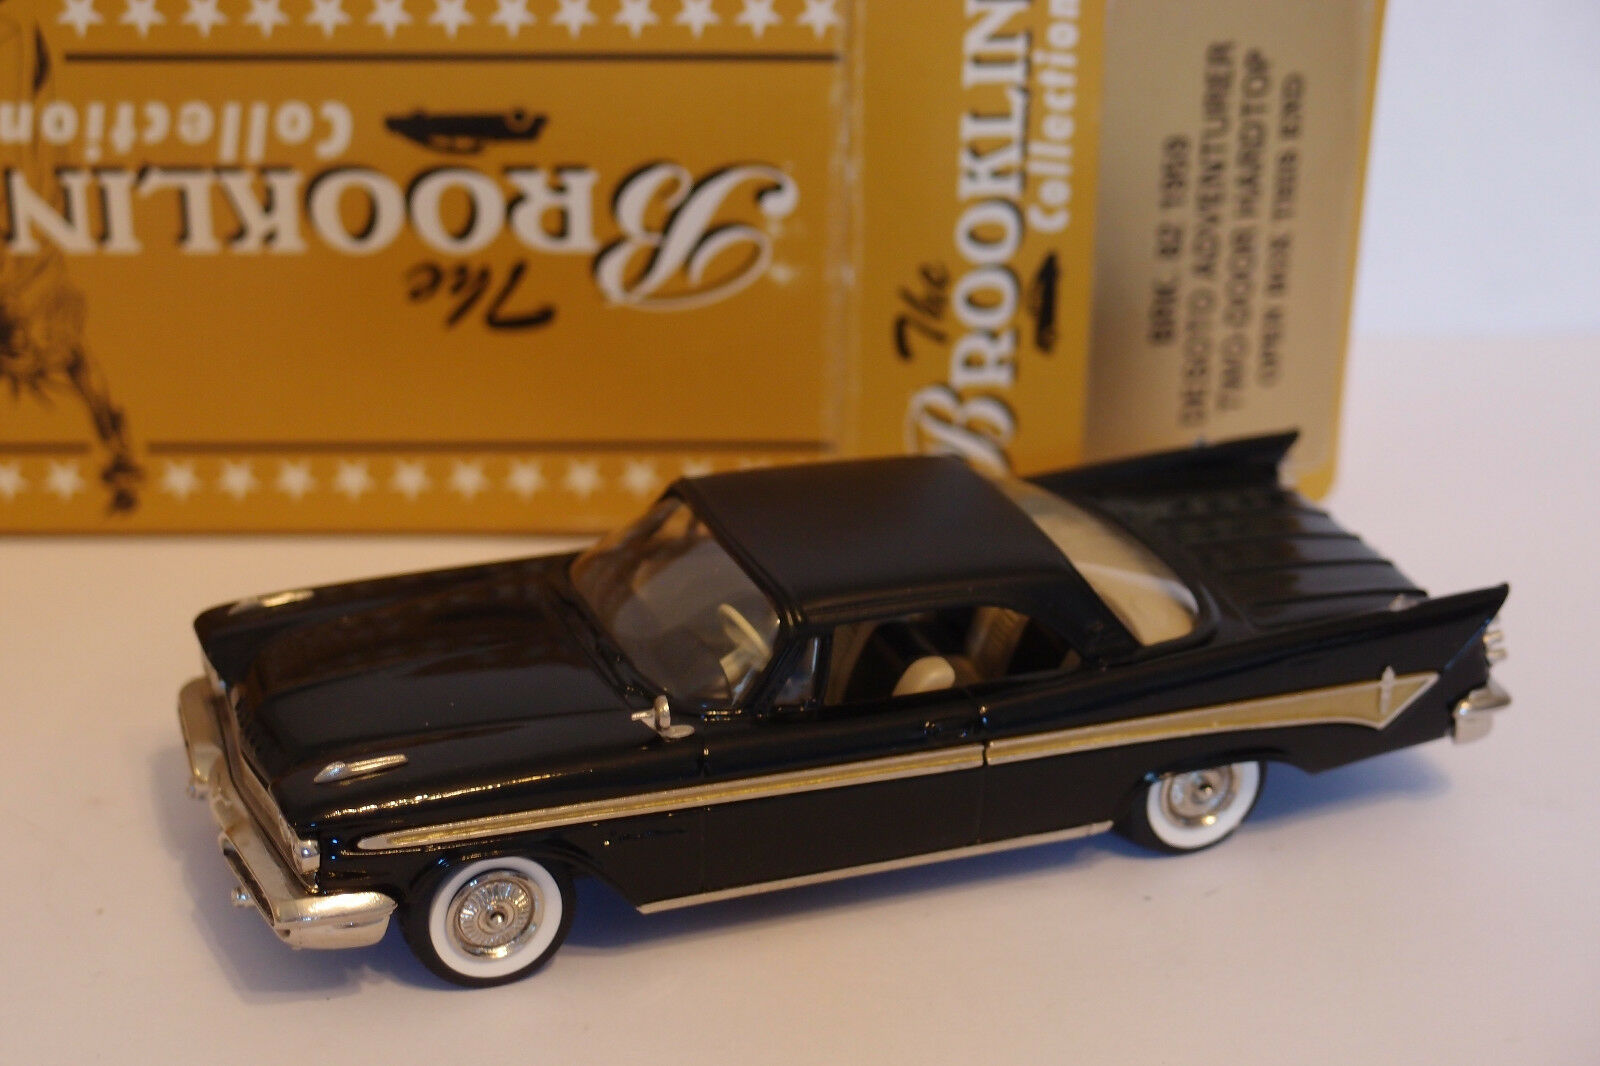 BROOKLIN BRK 82 1959 DESOTO ADVENTURER TWO-DOOR HARDTOP 1 43